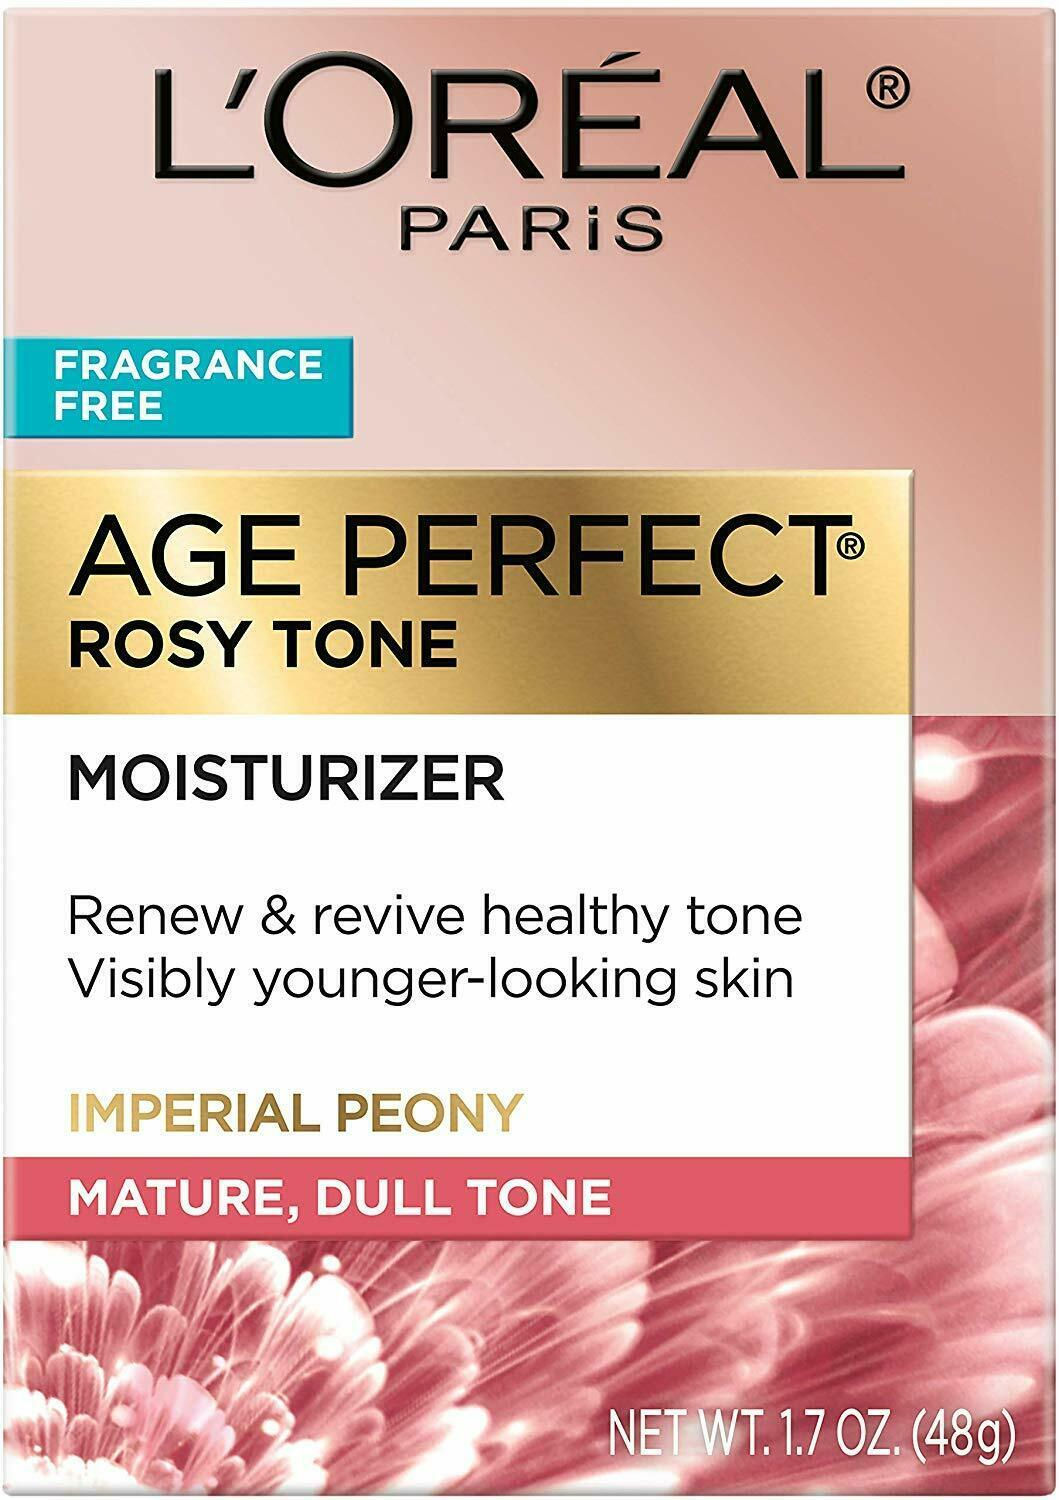 Primary image for L'Oreal Paris Skin Care, Age Perfect Rosy Tone Fragrance Free Moisturizer for Fa